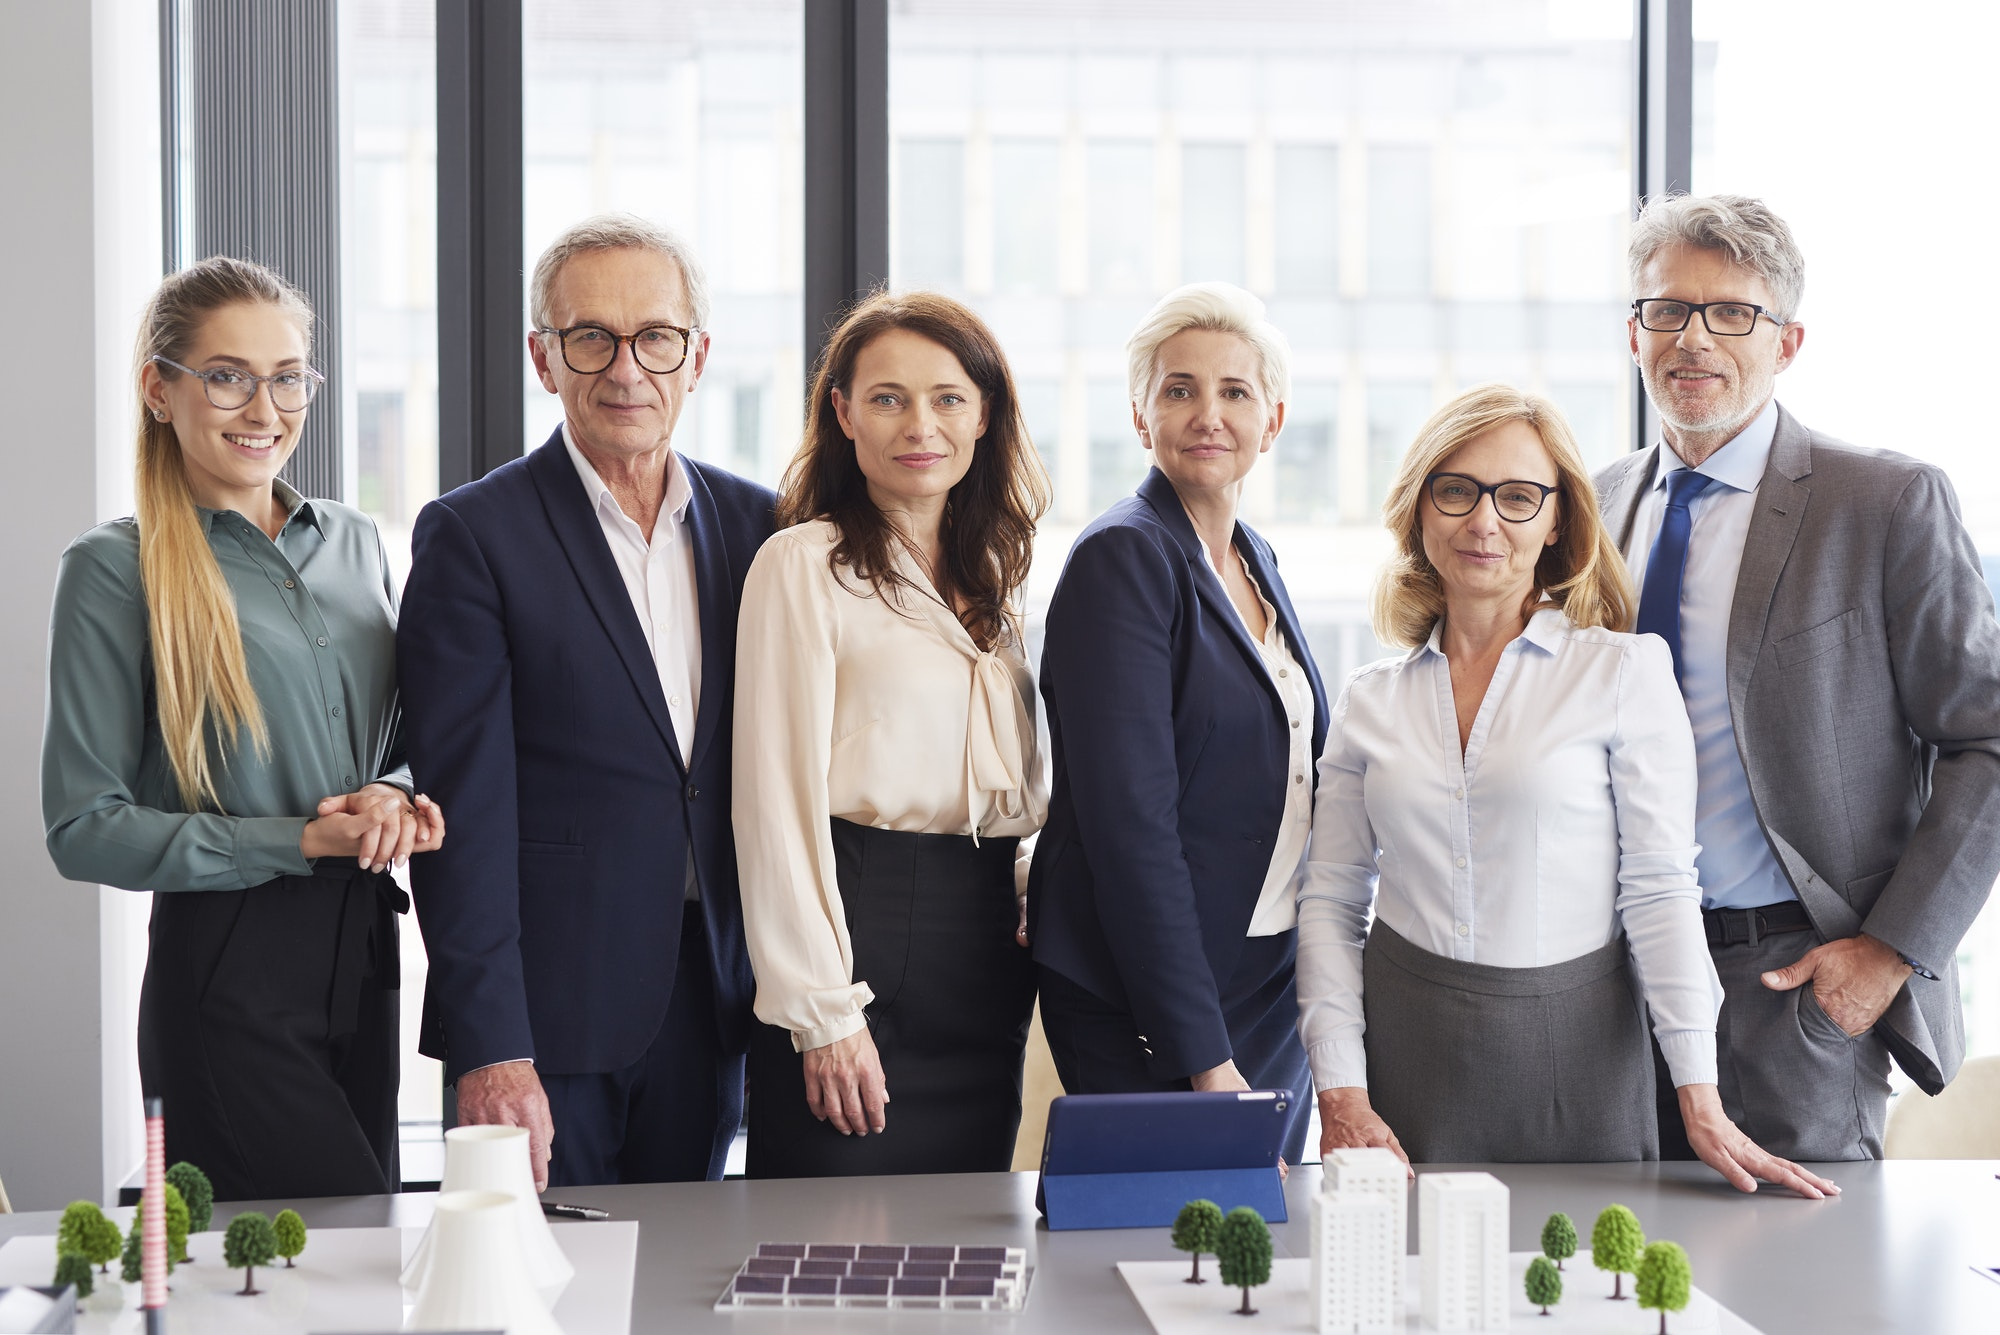 Portrait of business people in conference room